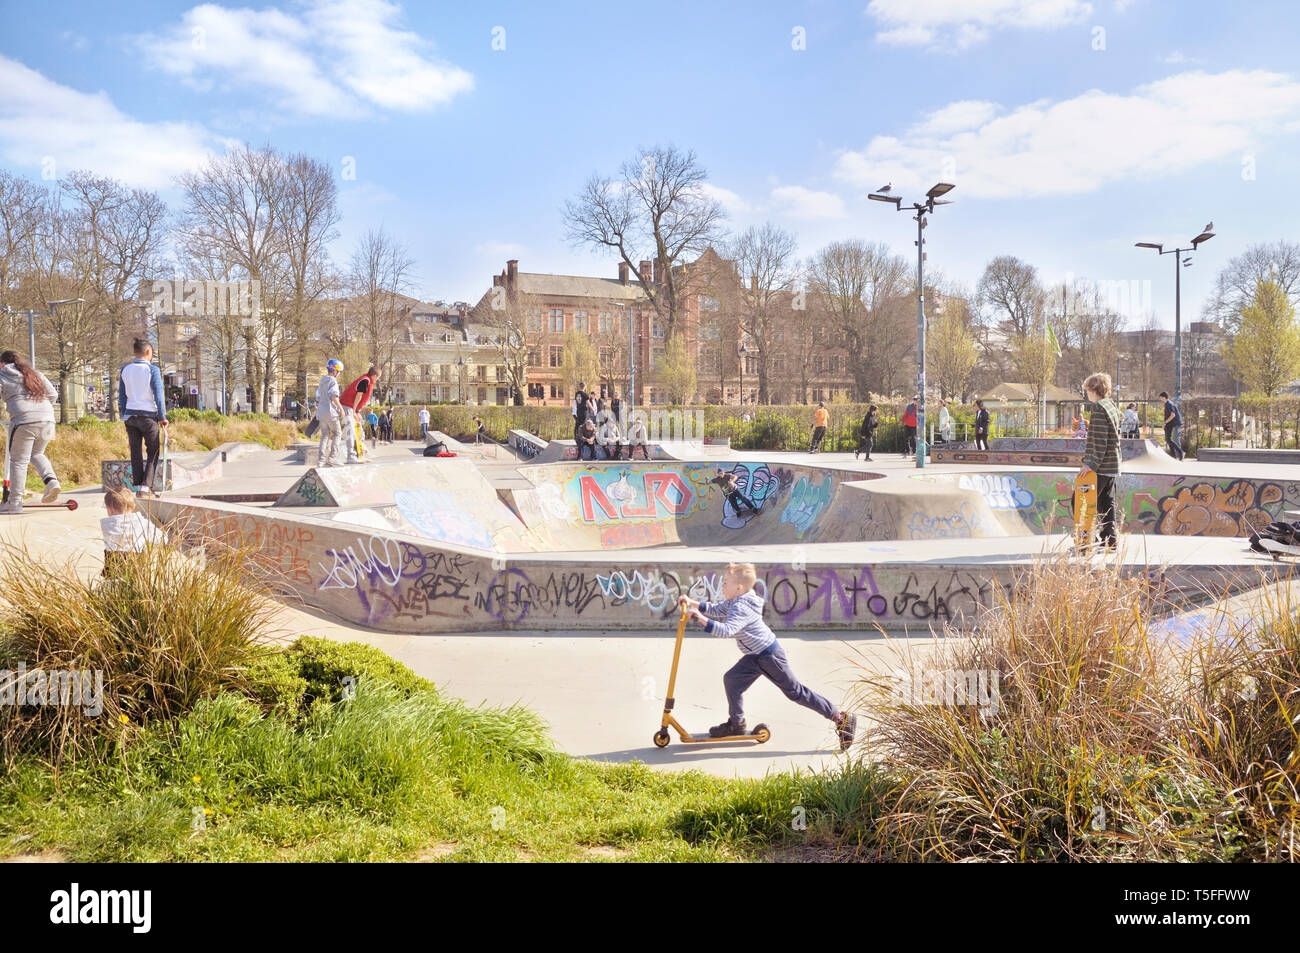 The Level Skatepark in Brighton, East Sussex, England, UK - Stock Image